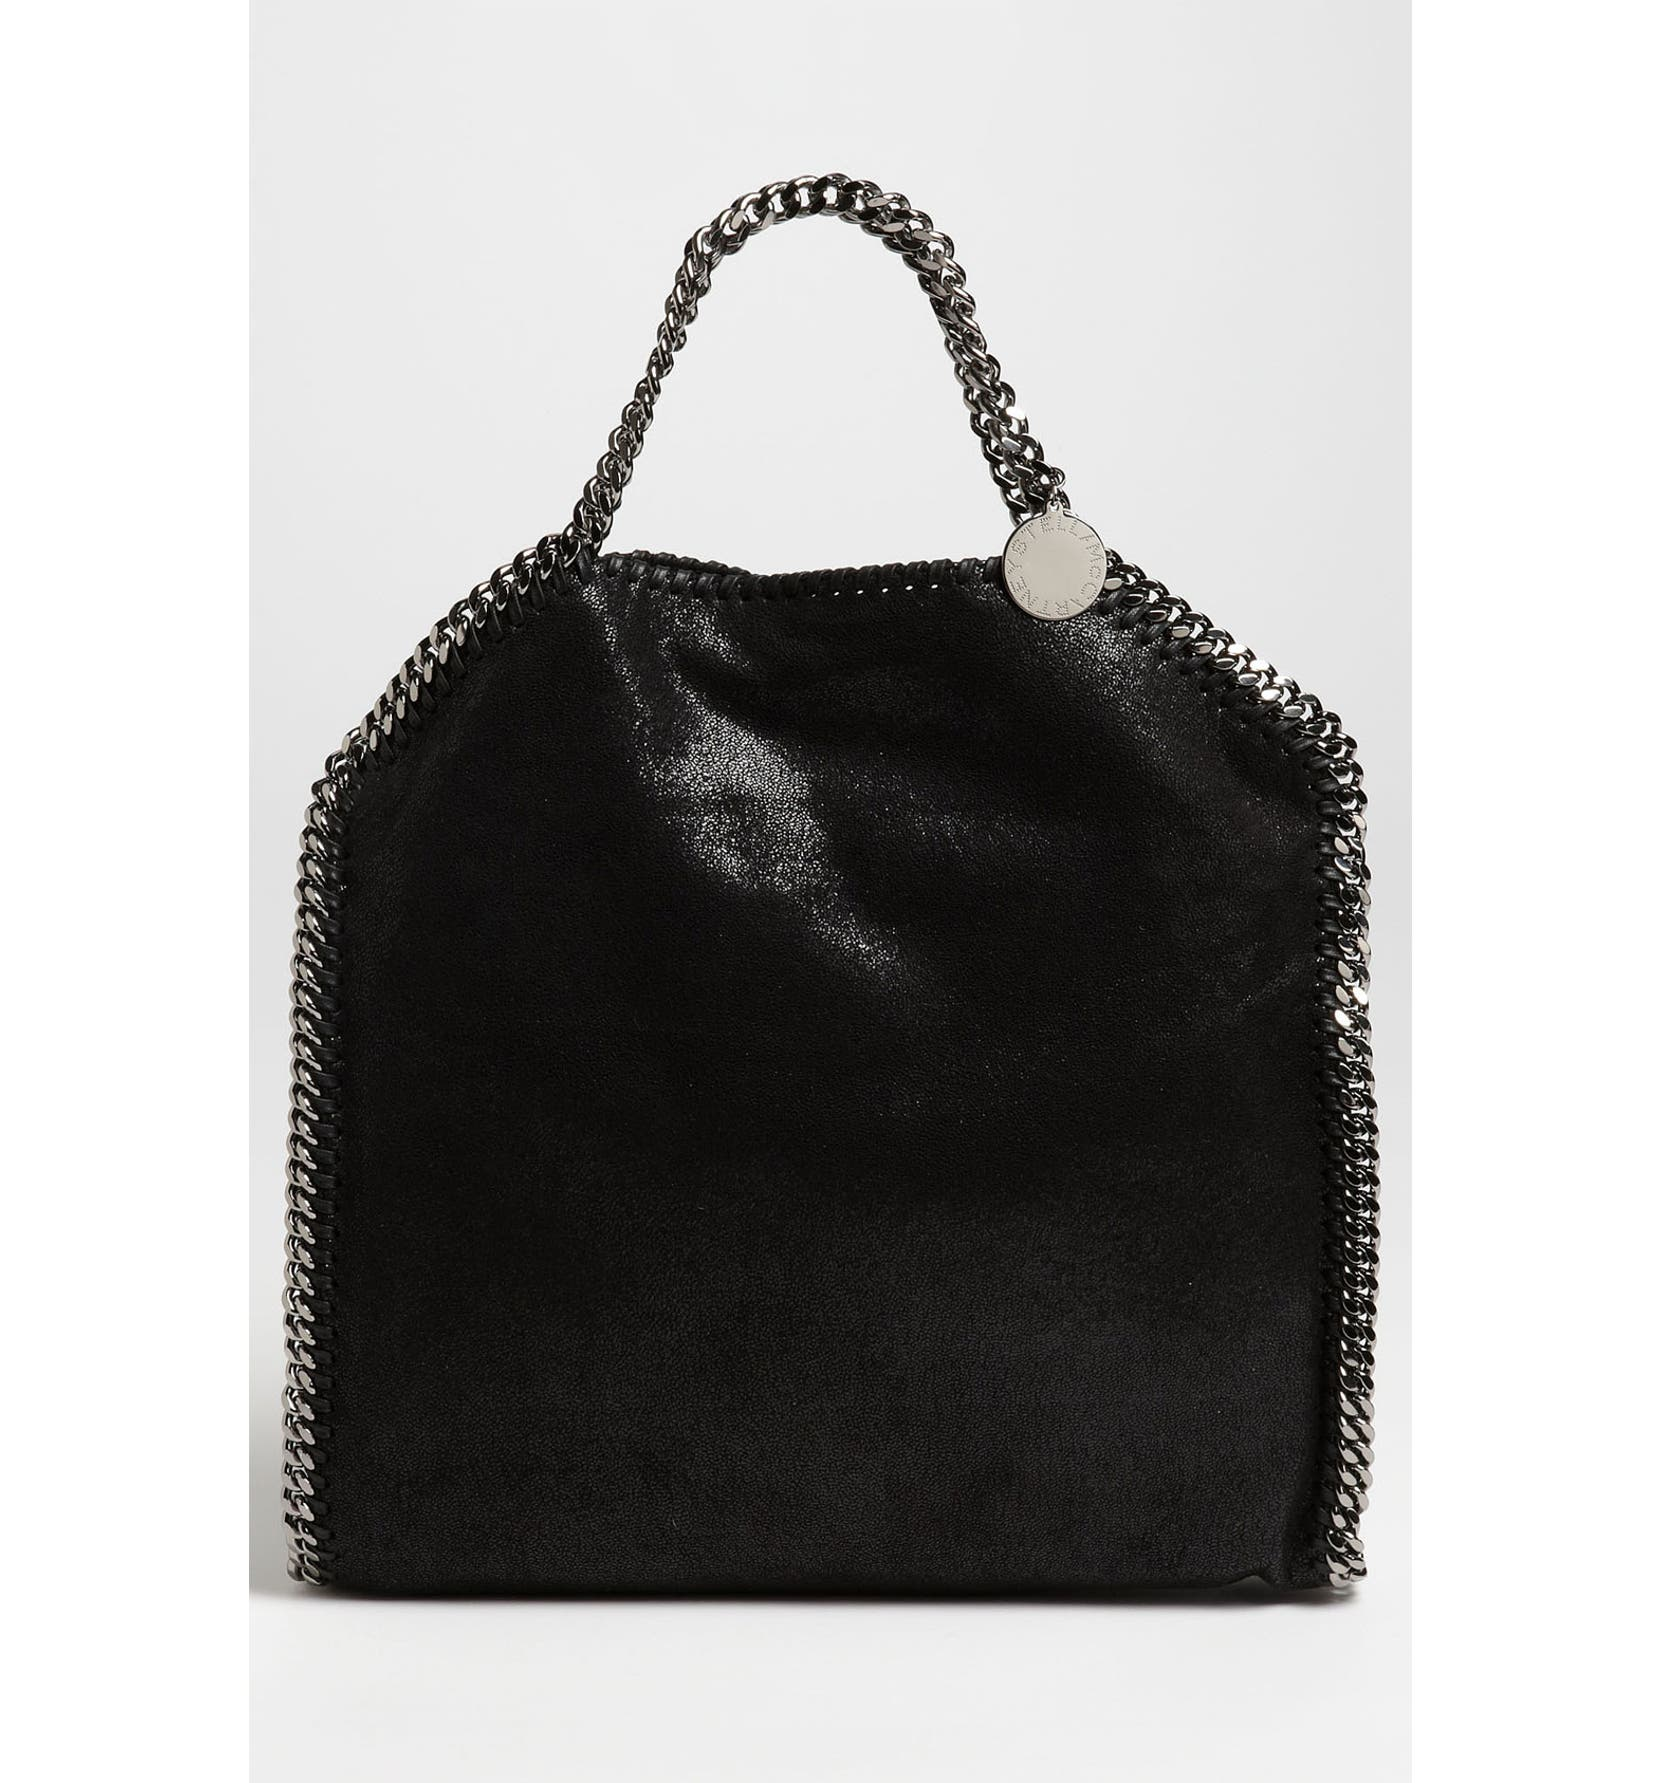 Stella McCartney  Falabella - Shaggy Deer  Faux Leather Foldover Tote    Nordstrom 7900969128